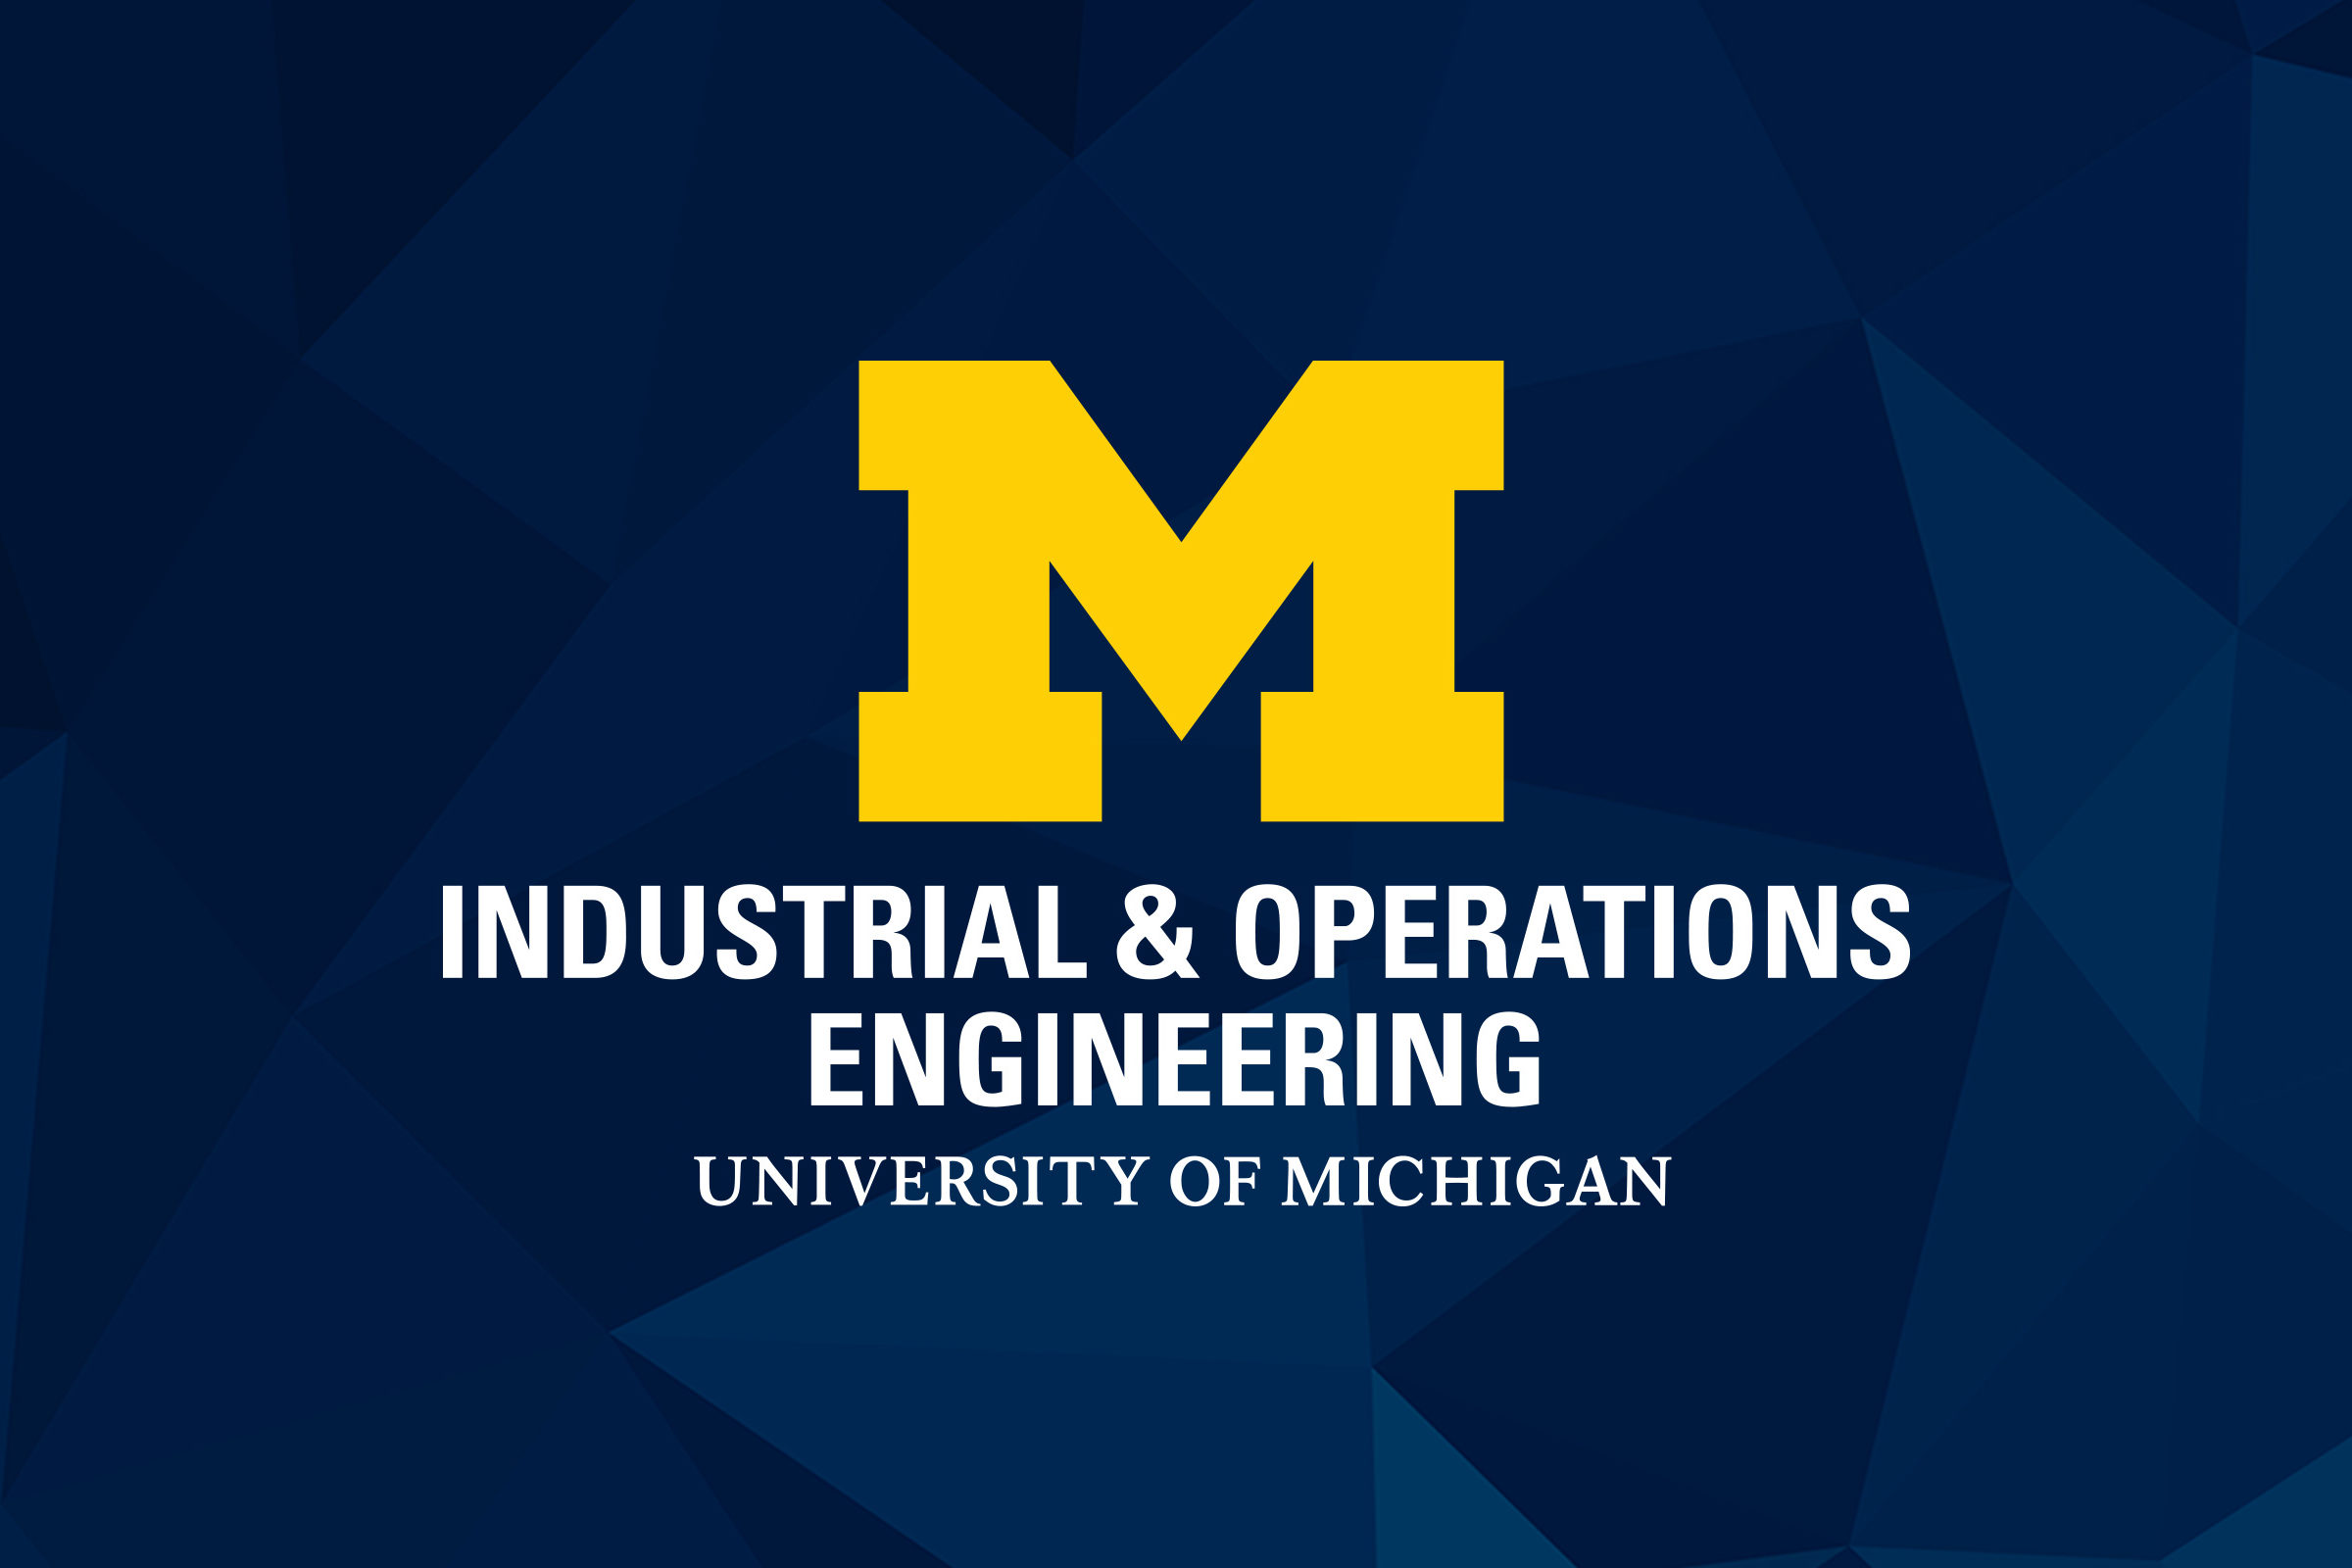 Industrial & Operations Engineering logo